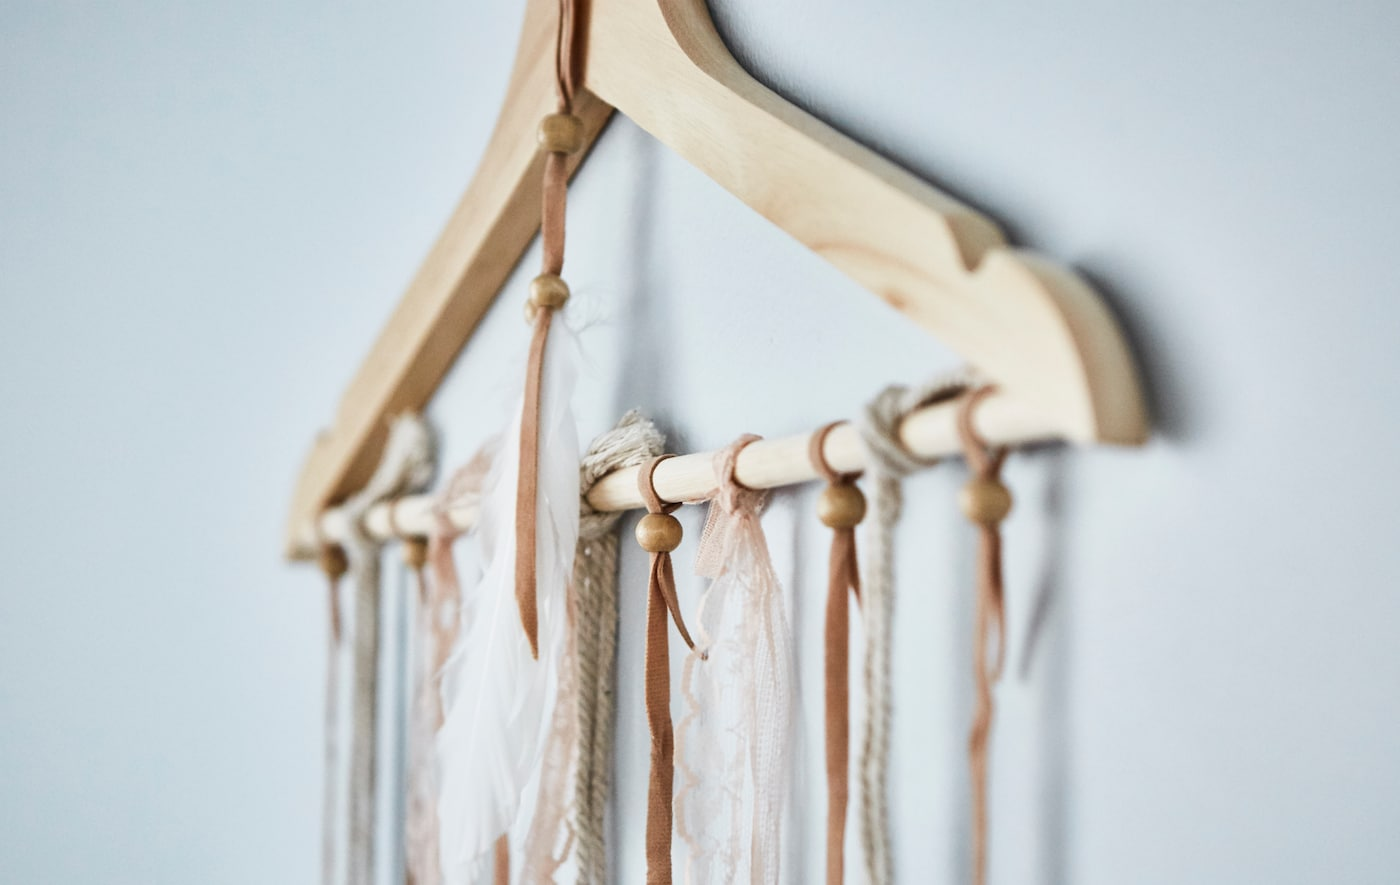 Want to organise your newspapers? Try folding them over a hanger! IKEA offers a wide selection of hangers such as our classic BUMERANG hanger in solid hardwood.